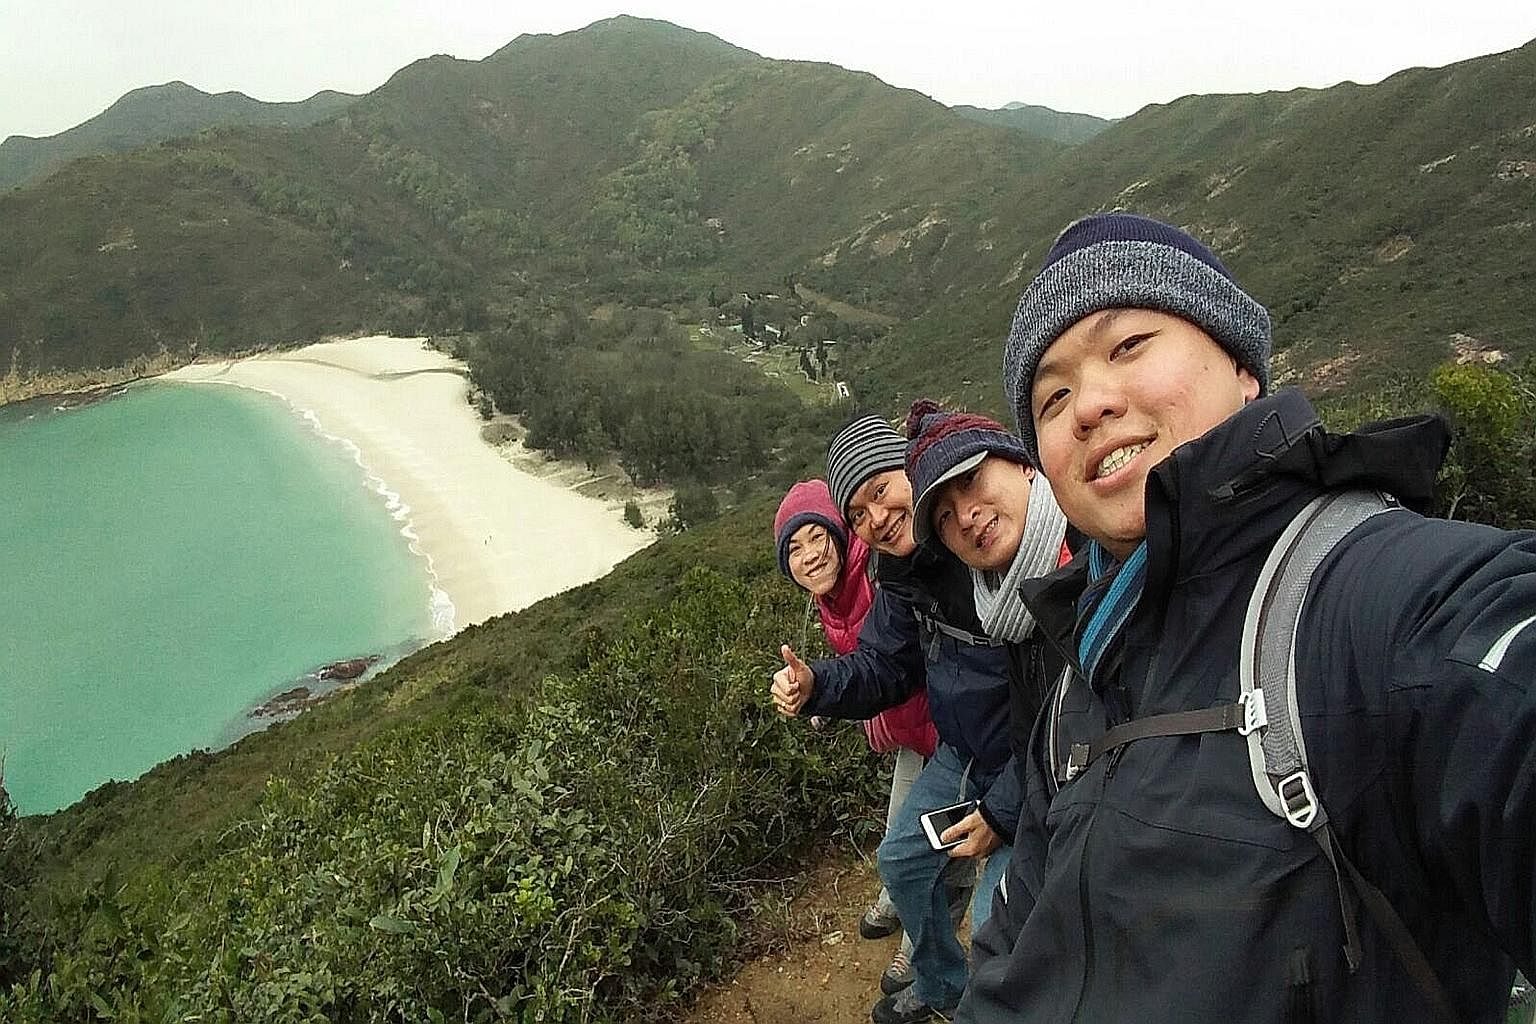 a snapshot of icicles. Singaporean pilot Mr Tan and his three friends were hiking at Sai Kung in the New Territories